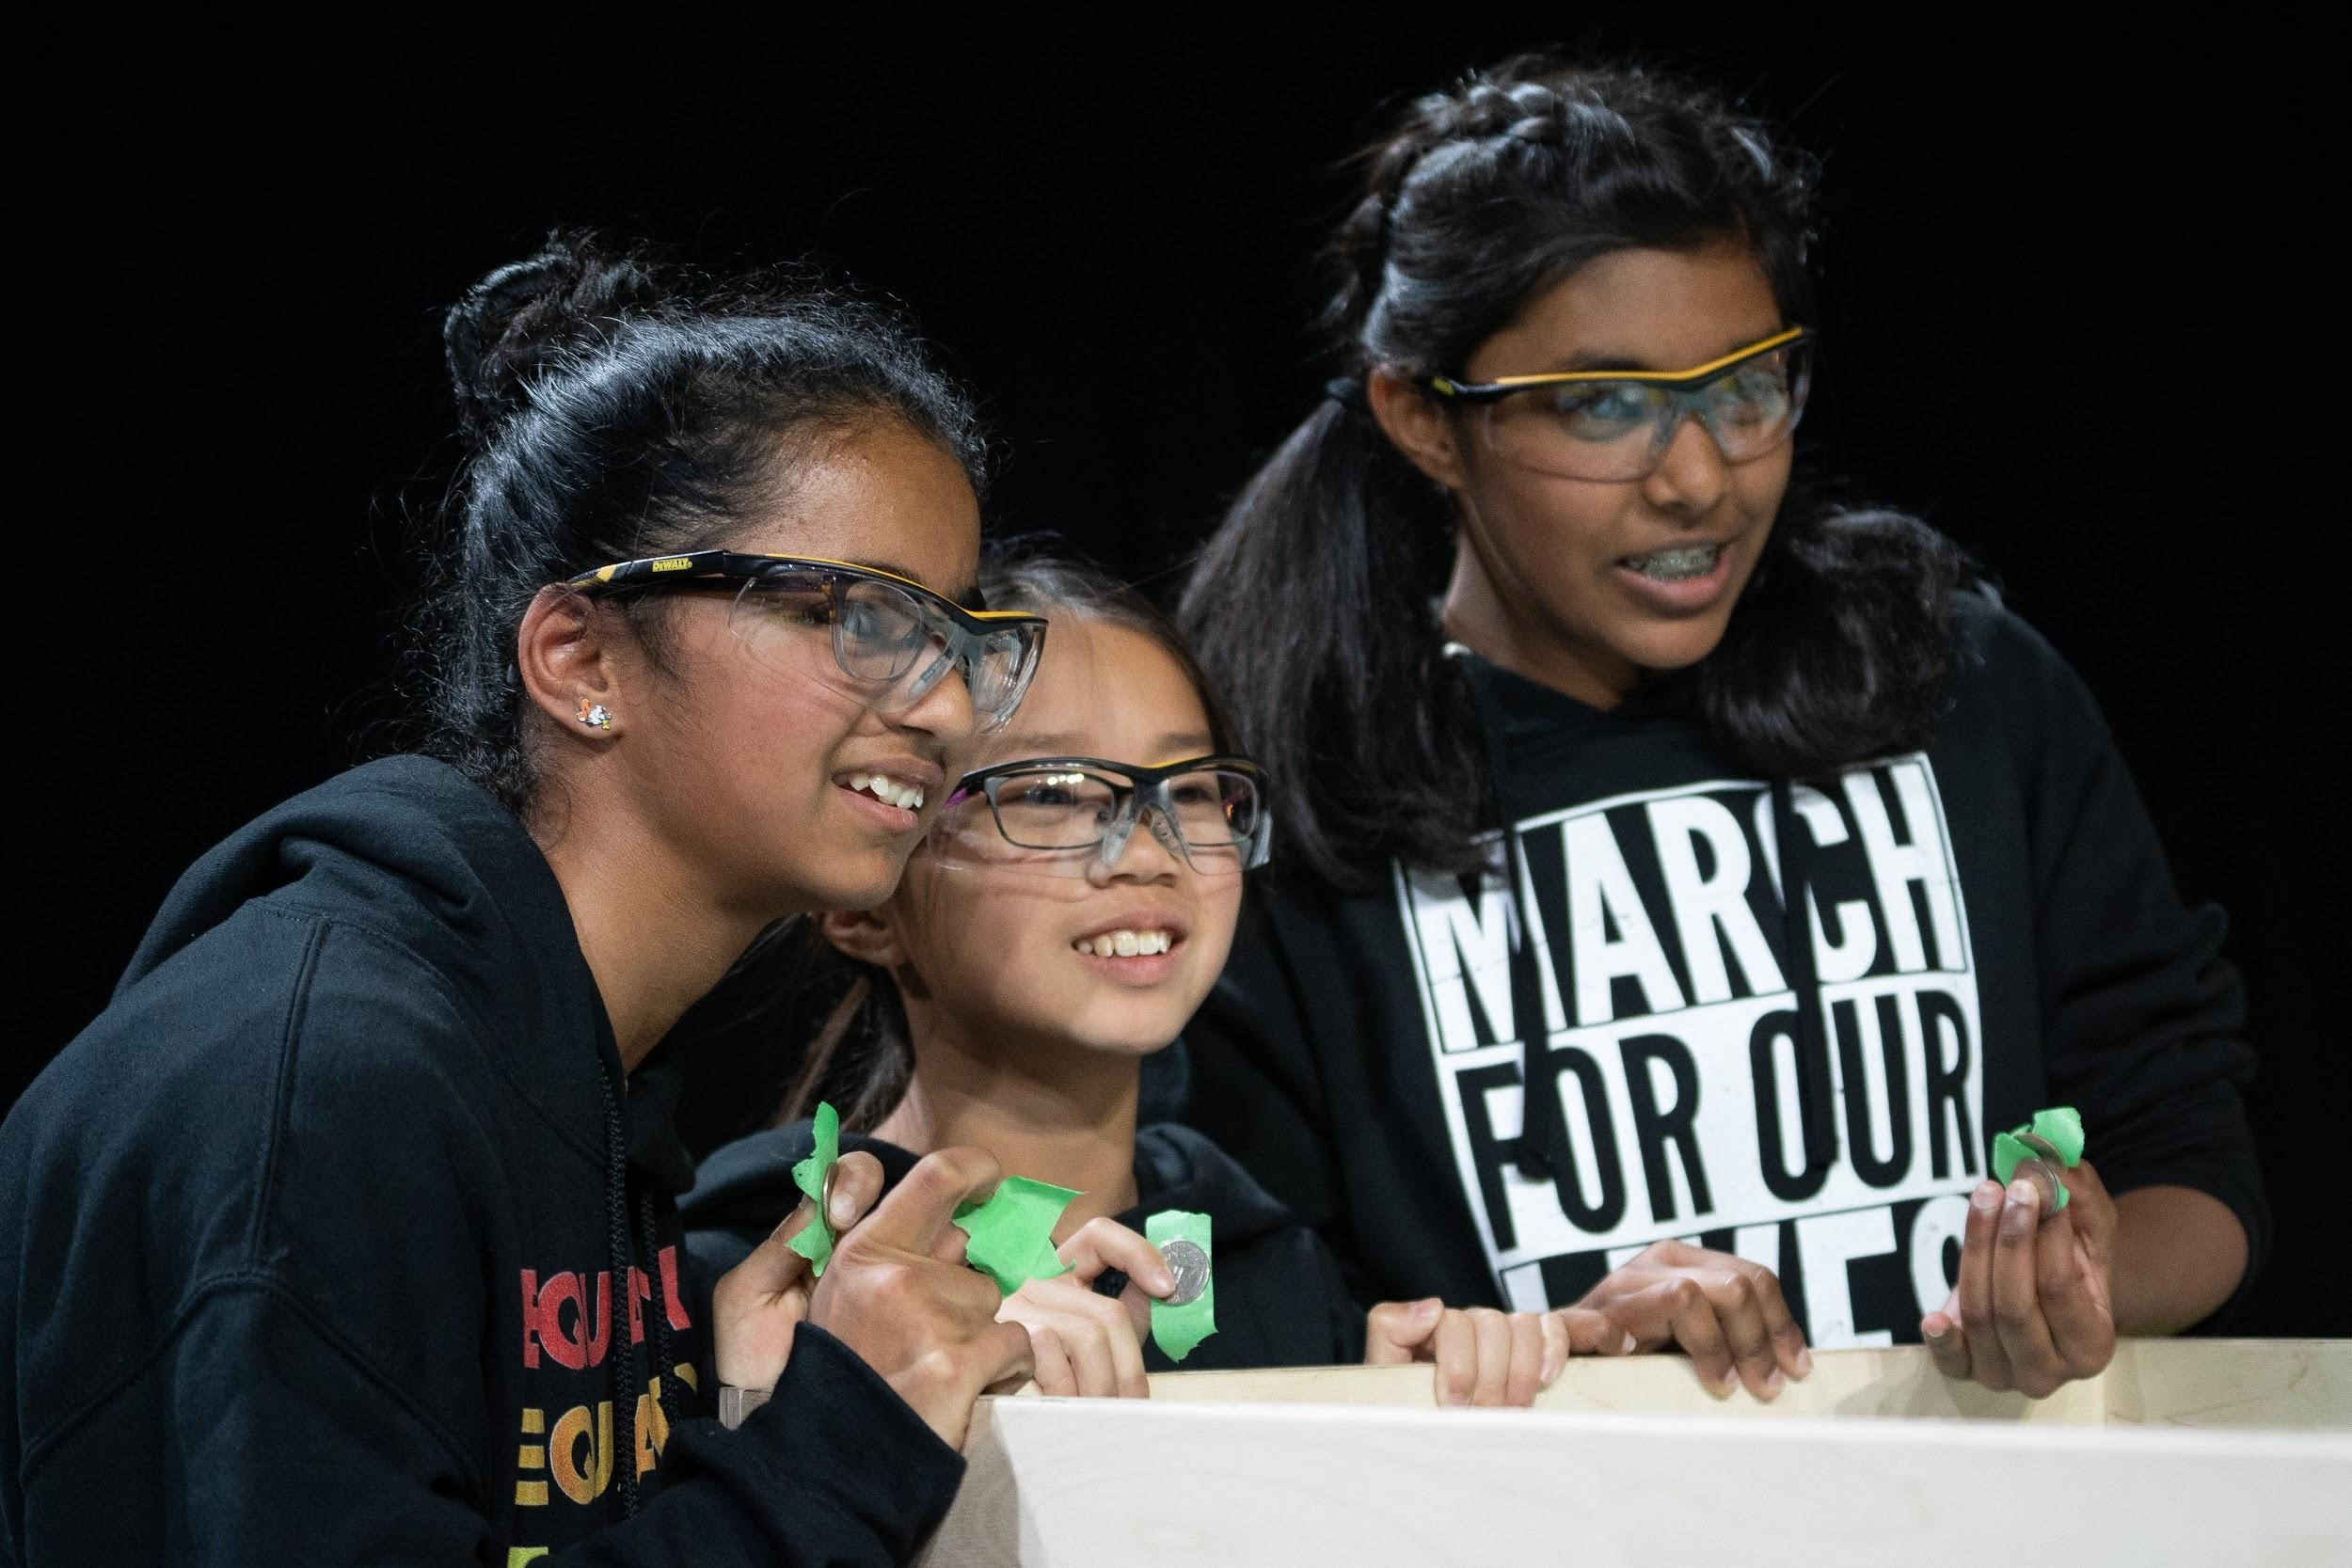 Three young girls wearing safety glasses participate in the tech challenge